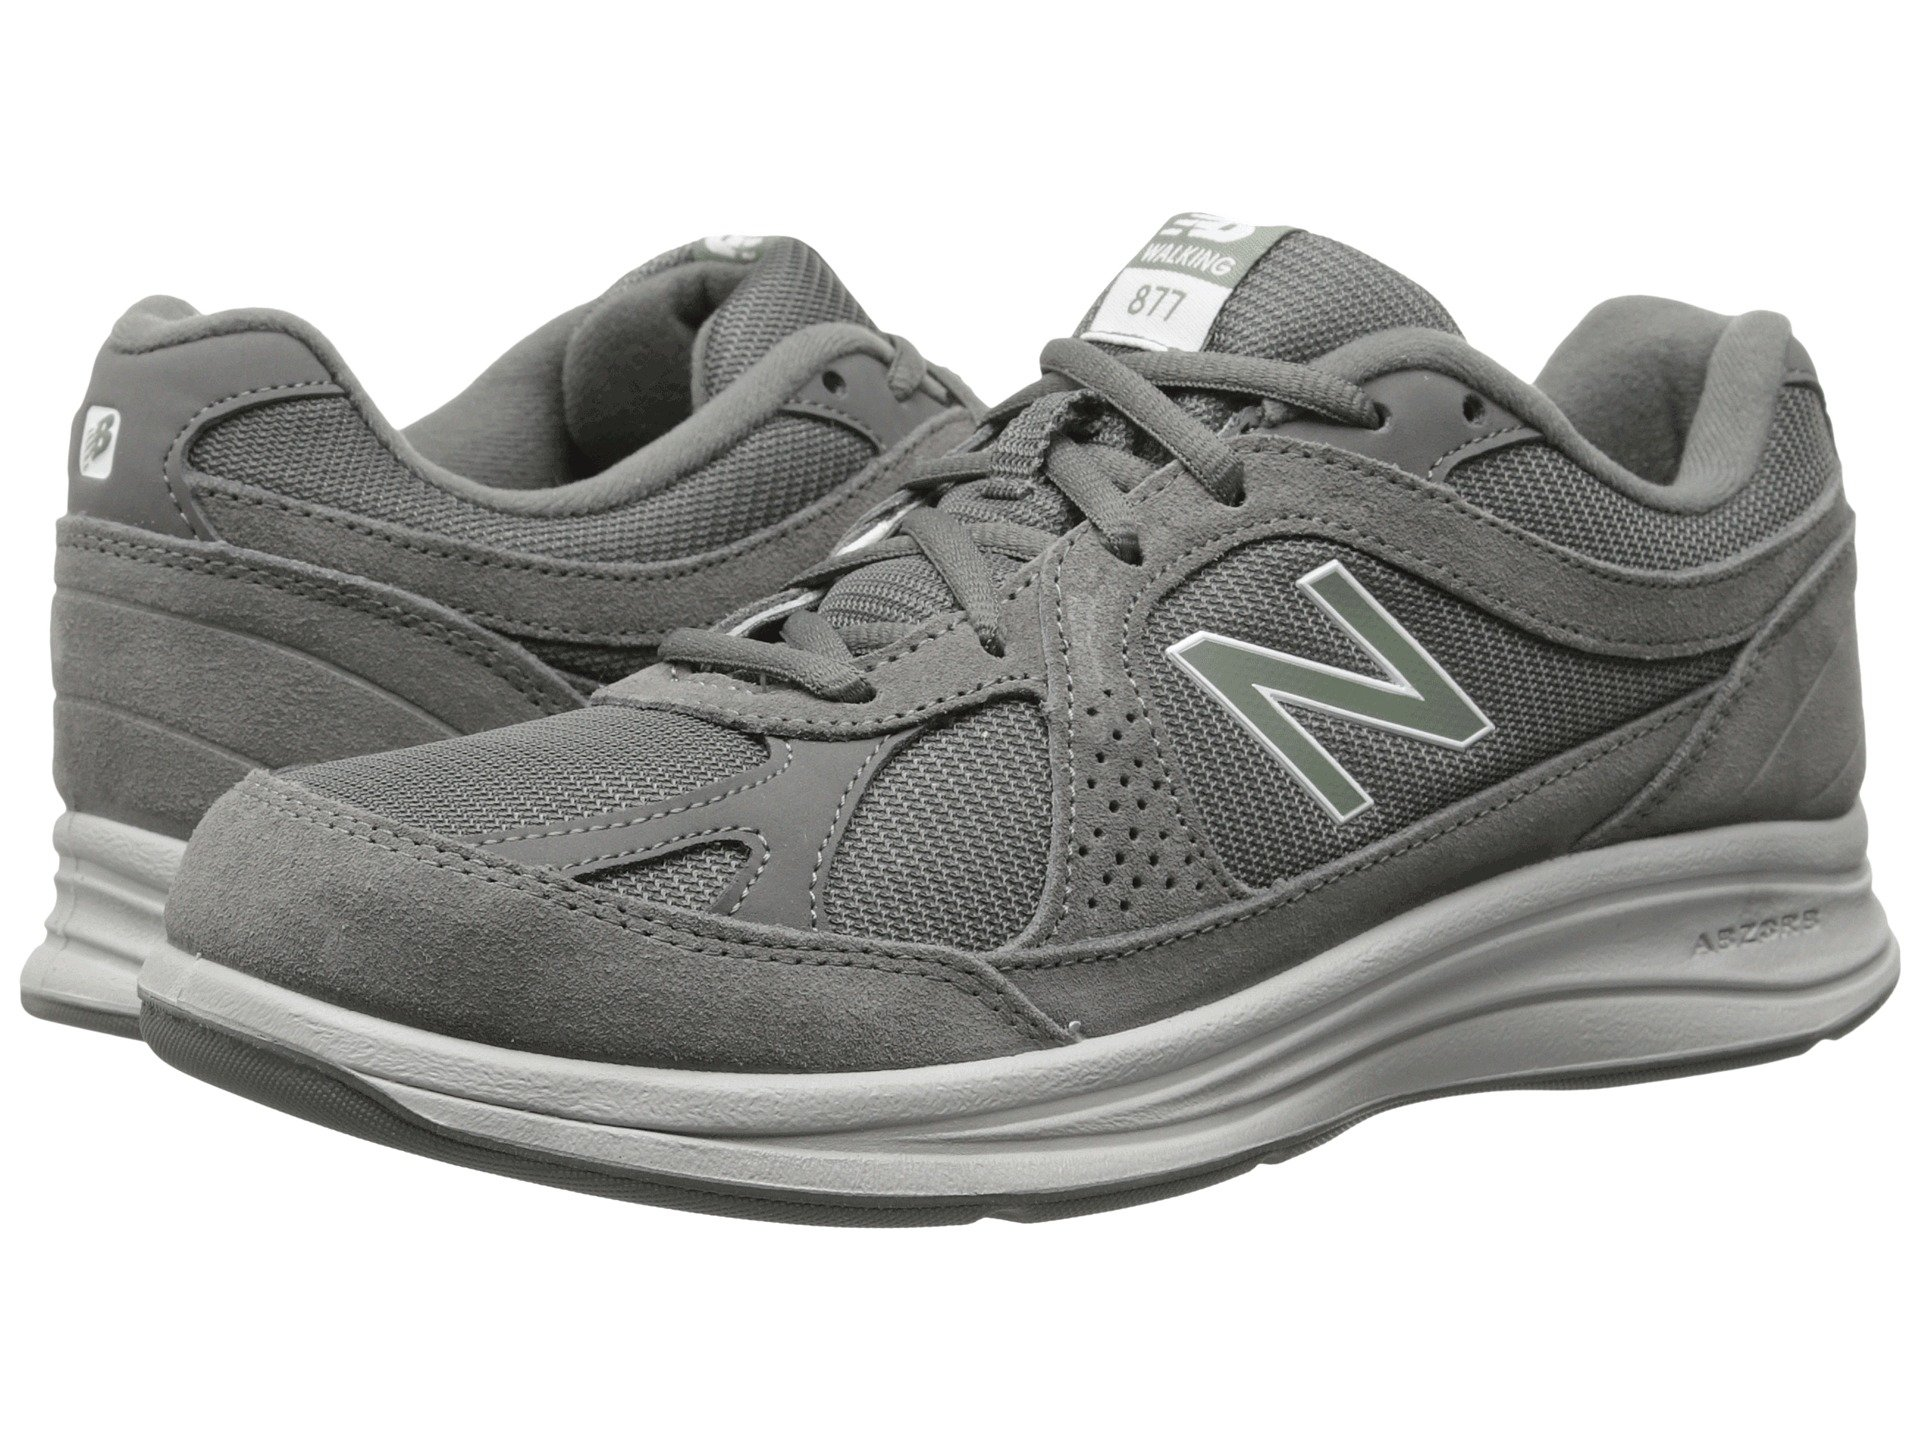 f3f25932a1ea Men s Walking Athletic Shoes + FREE SHIPPING